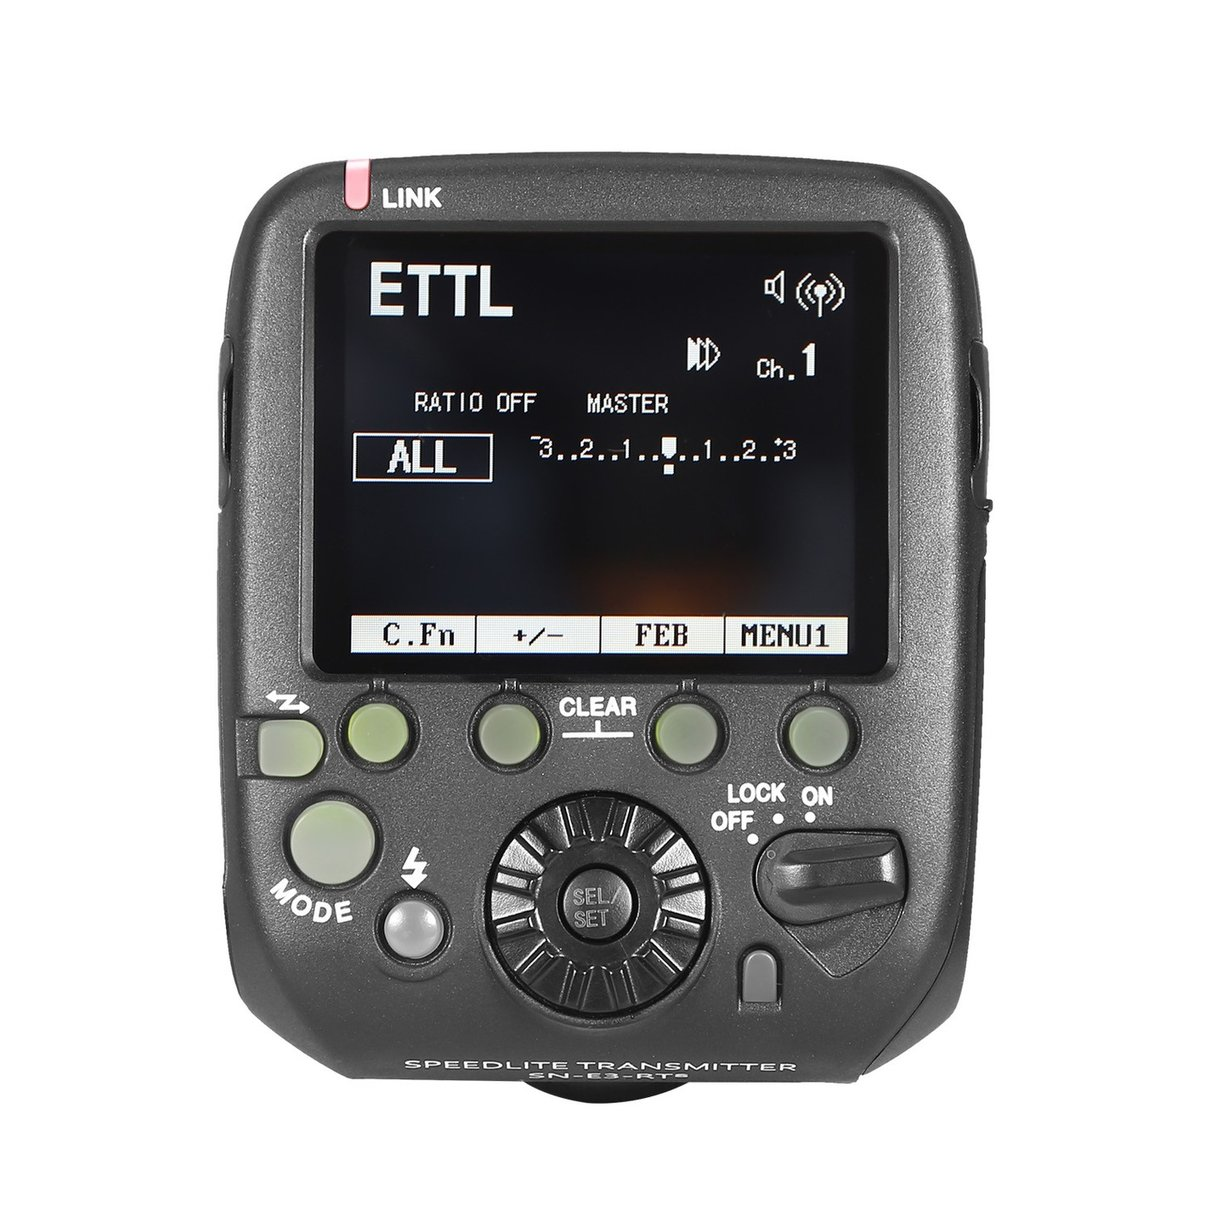 Shanny SN-E3-RTs Transmitter Flash Trigger for Canon 600EX-RT Yongnuo YN600EX-RT SN600C-RT Flash Speedlite As ST-E3-RT YN-E3-RT yongnuo trigger flash trigger yn e3 rt e3 rt e3rt ttl flash speedlite wireless transmitter for canon 600ex rt as st e3 rt